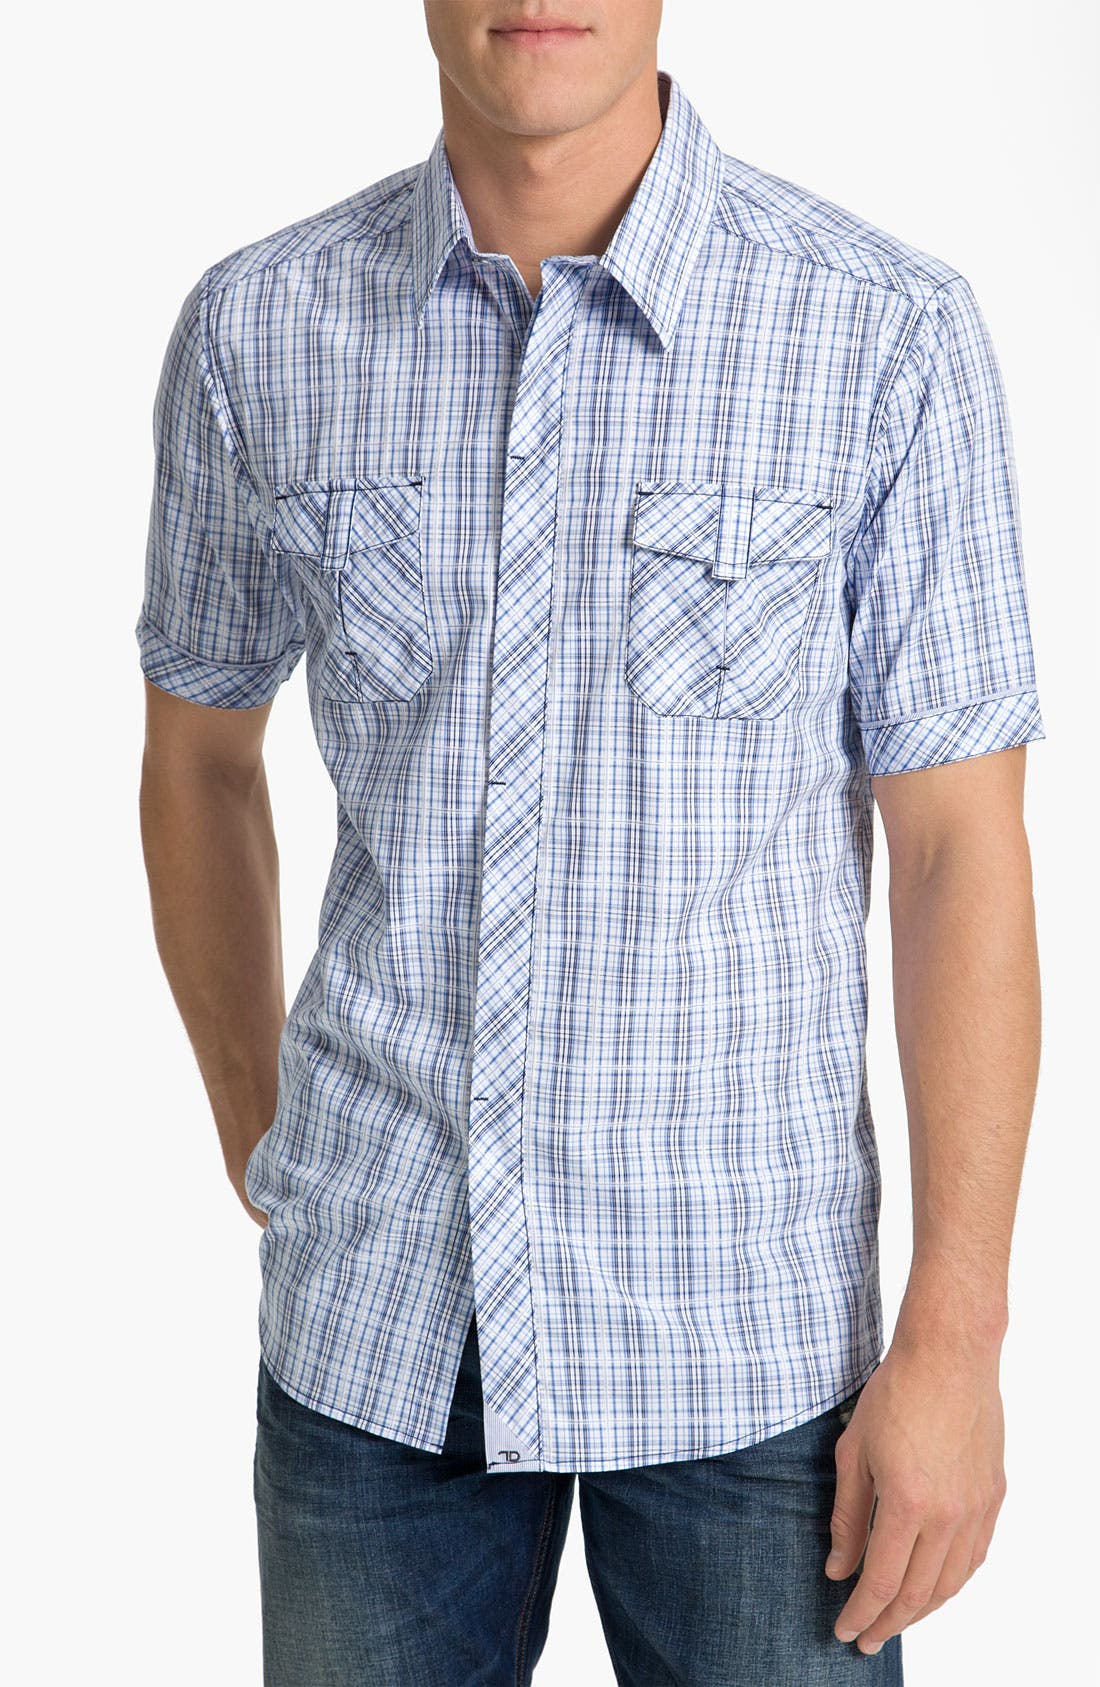 Alternate Image 1 Selected - 7 Diamonds 'Wonderful World' Plaid Woven Shirt